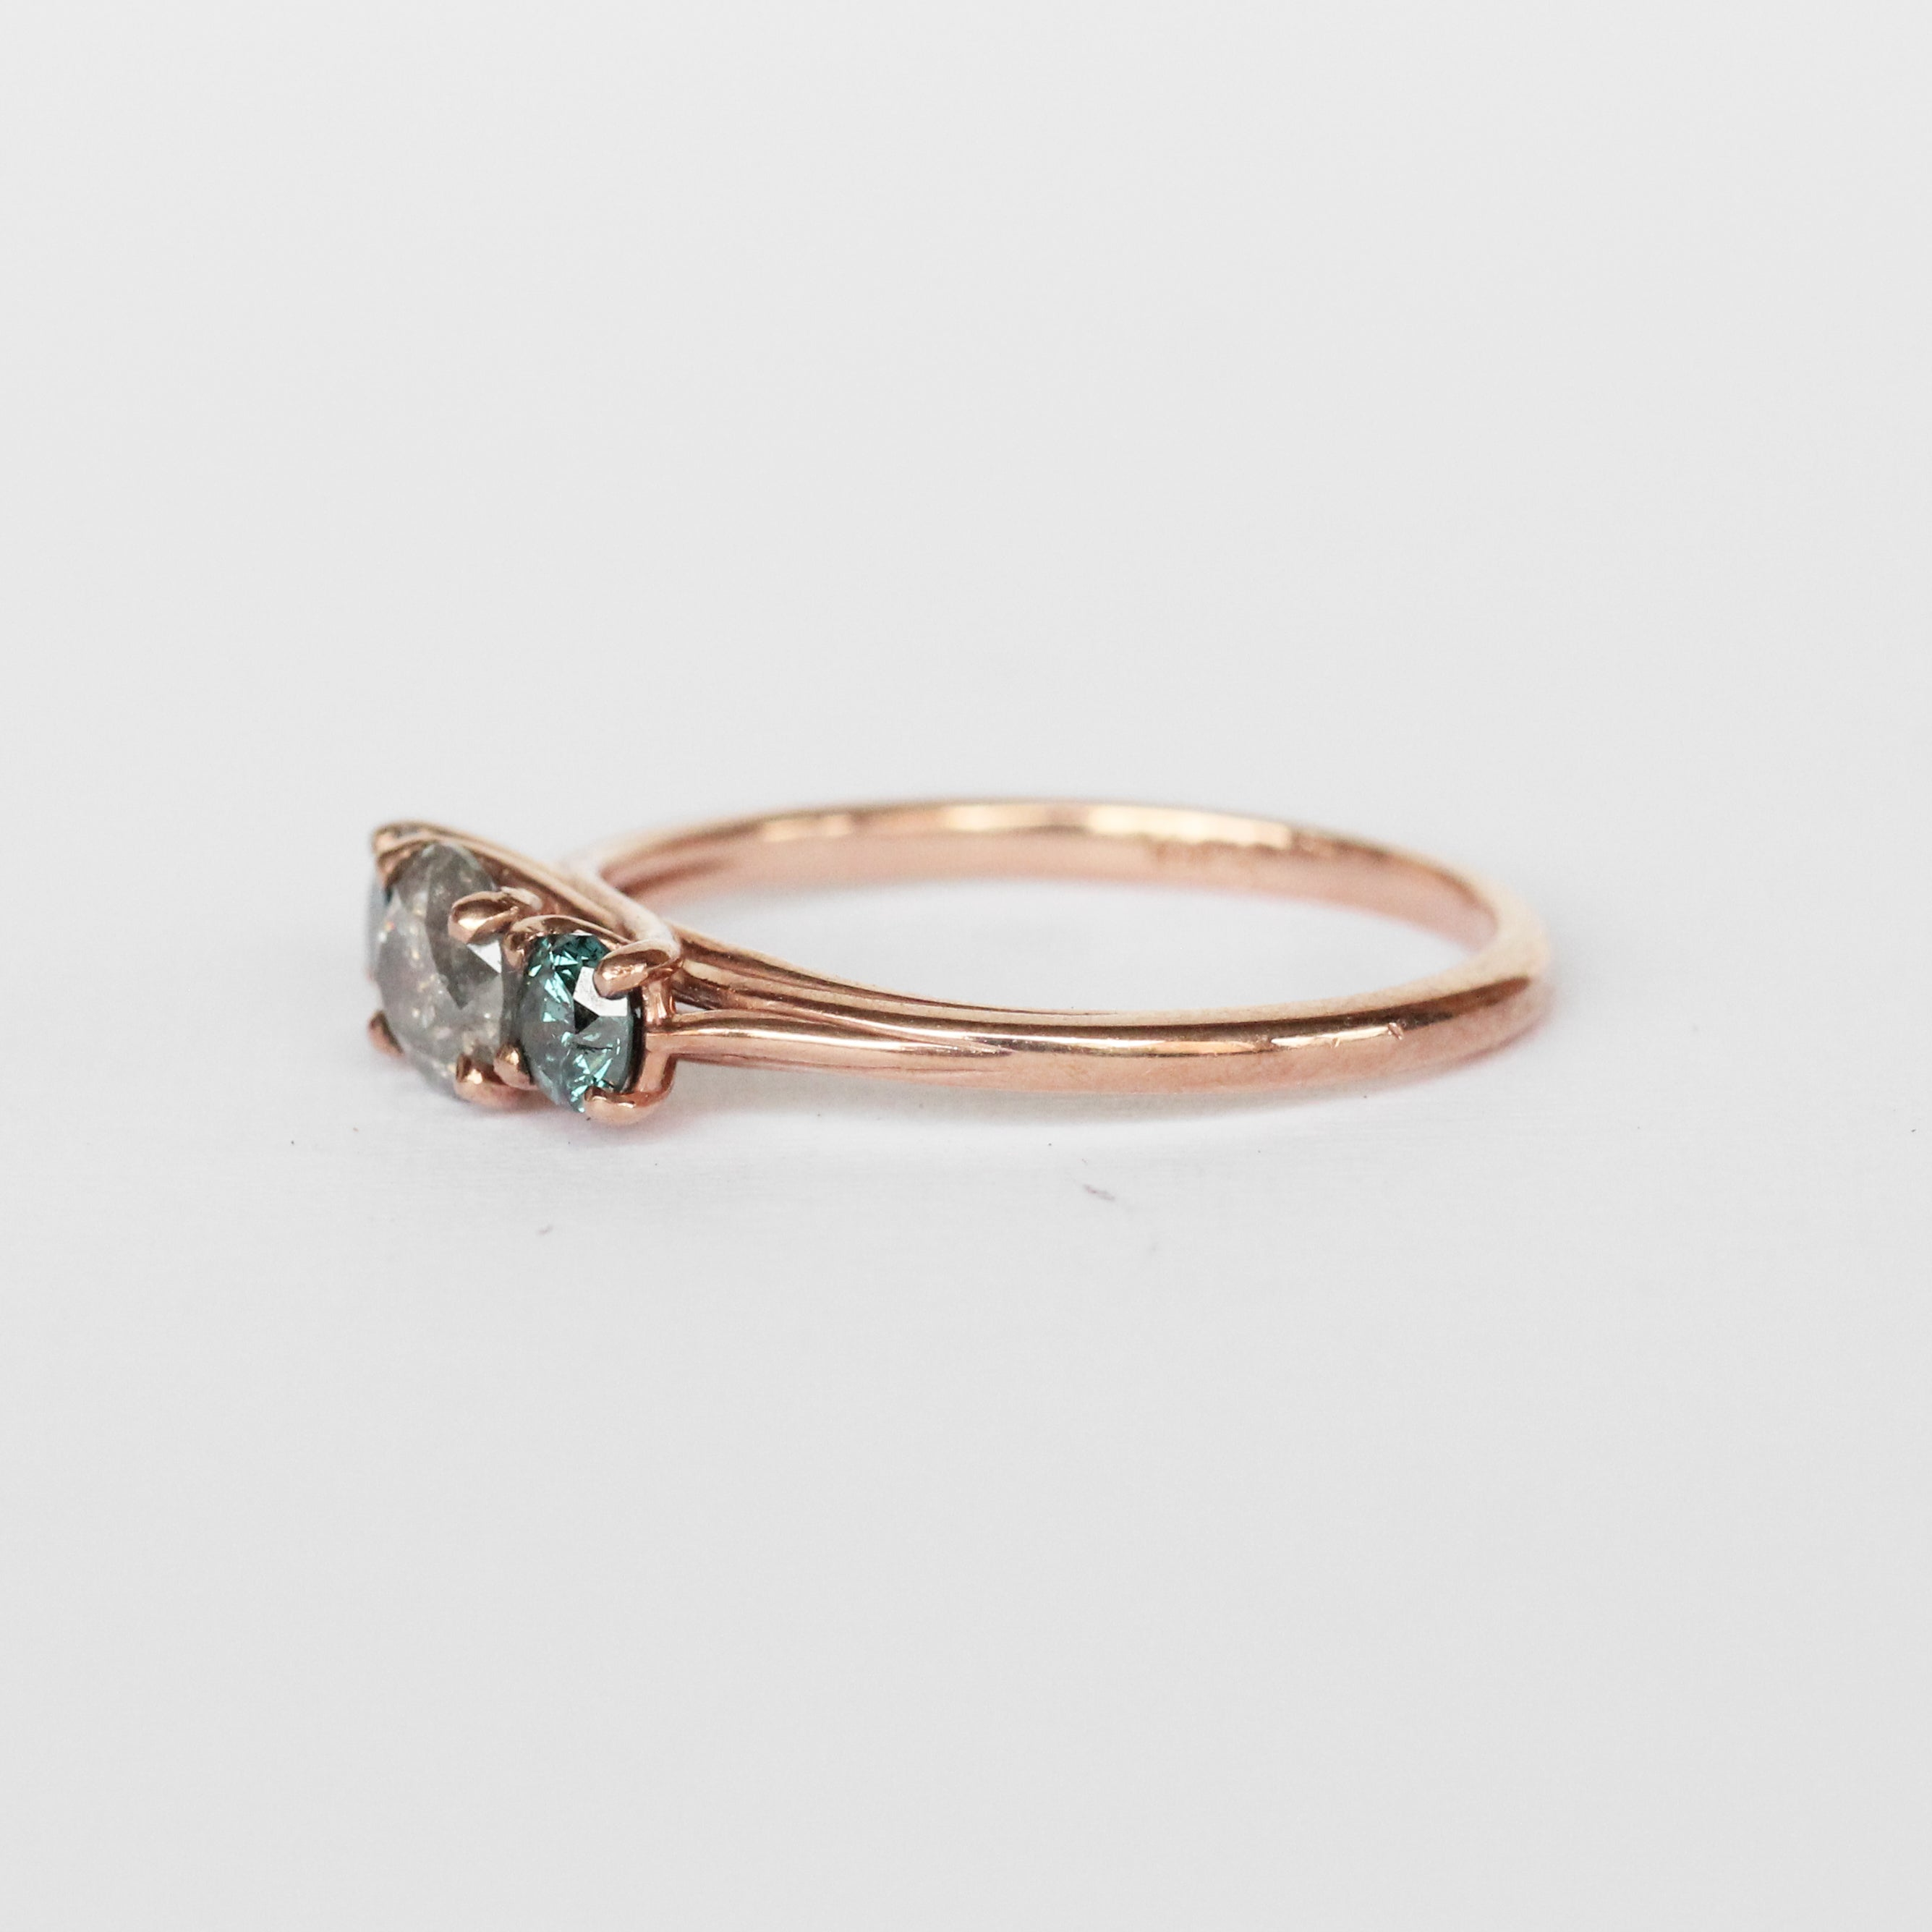 Altheda Ring with Misty Gray and Aqua Blue Diamonds in 10k Rose Gold - Ready to Size and Ship - Salt & Pepper Celestial Diamond Engagement Rings and Wedding Bands  by Midwinter Co.